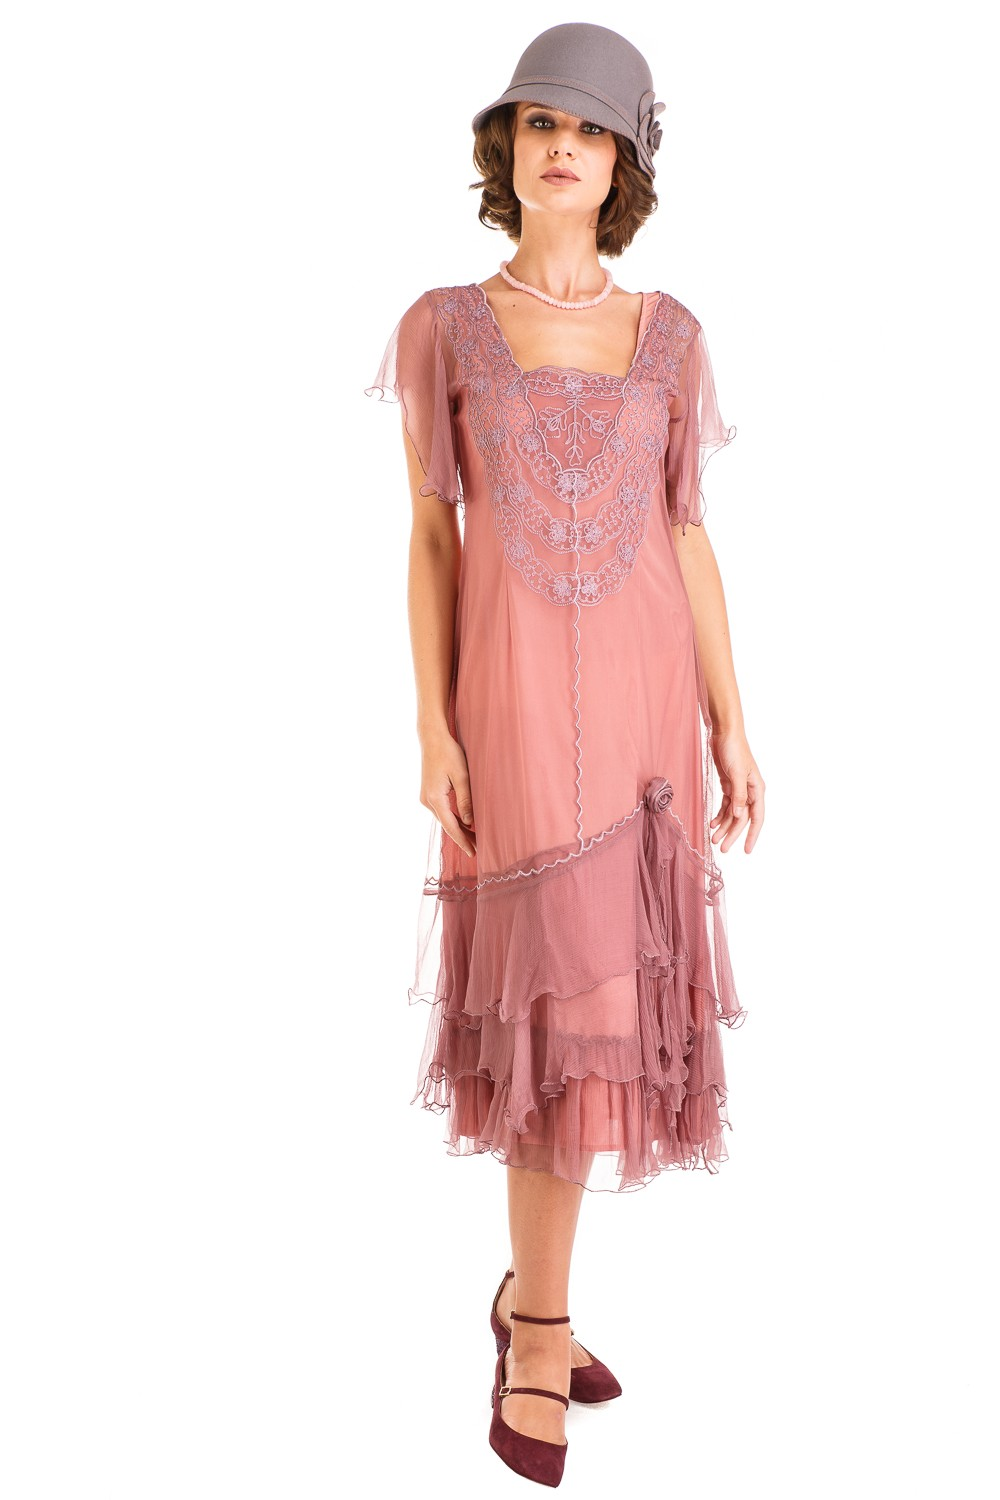 Age of Love Alexa 1920s Flapper Style Dress in Mauve by Nataya